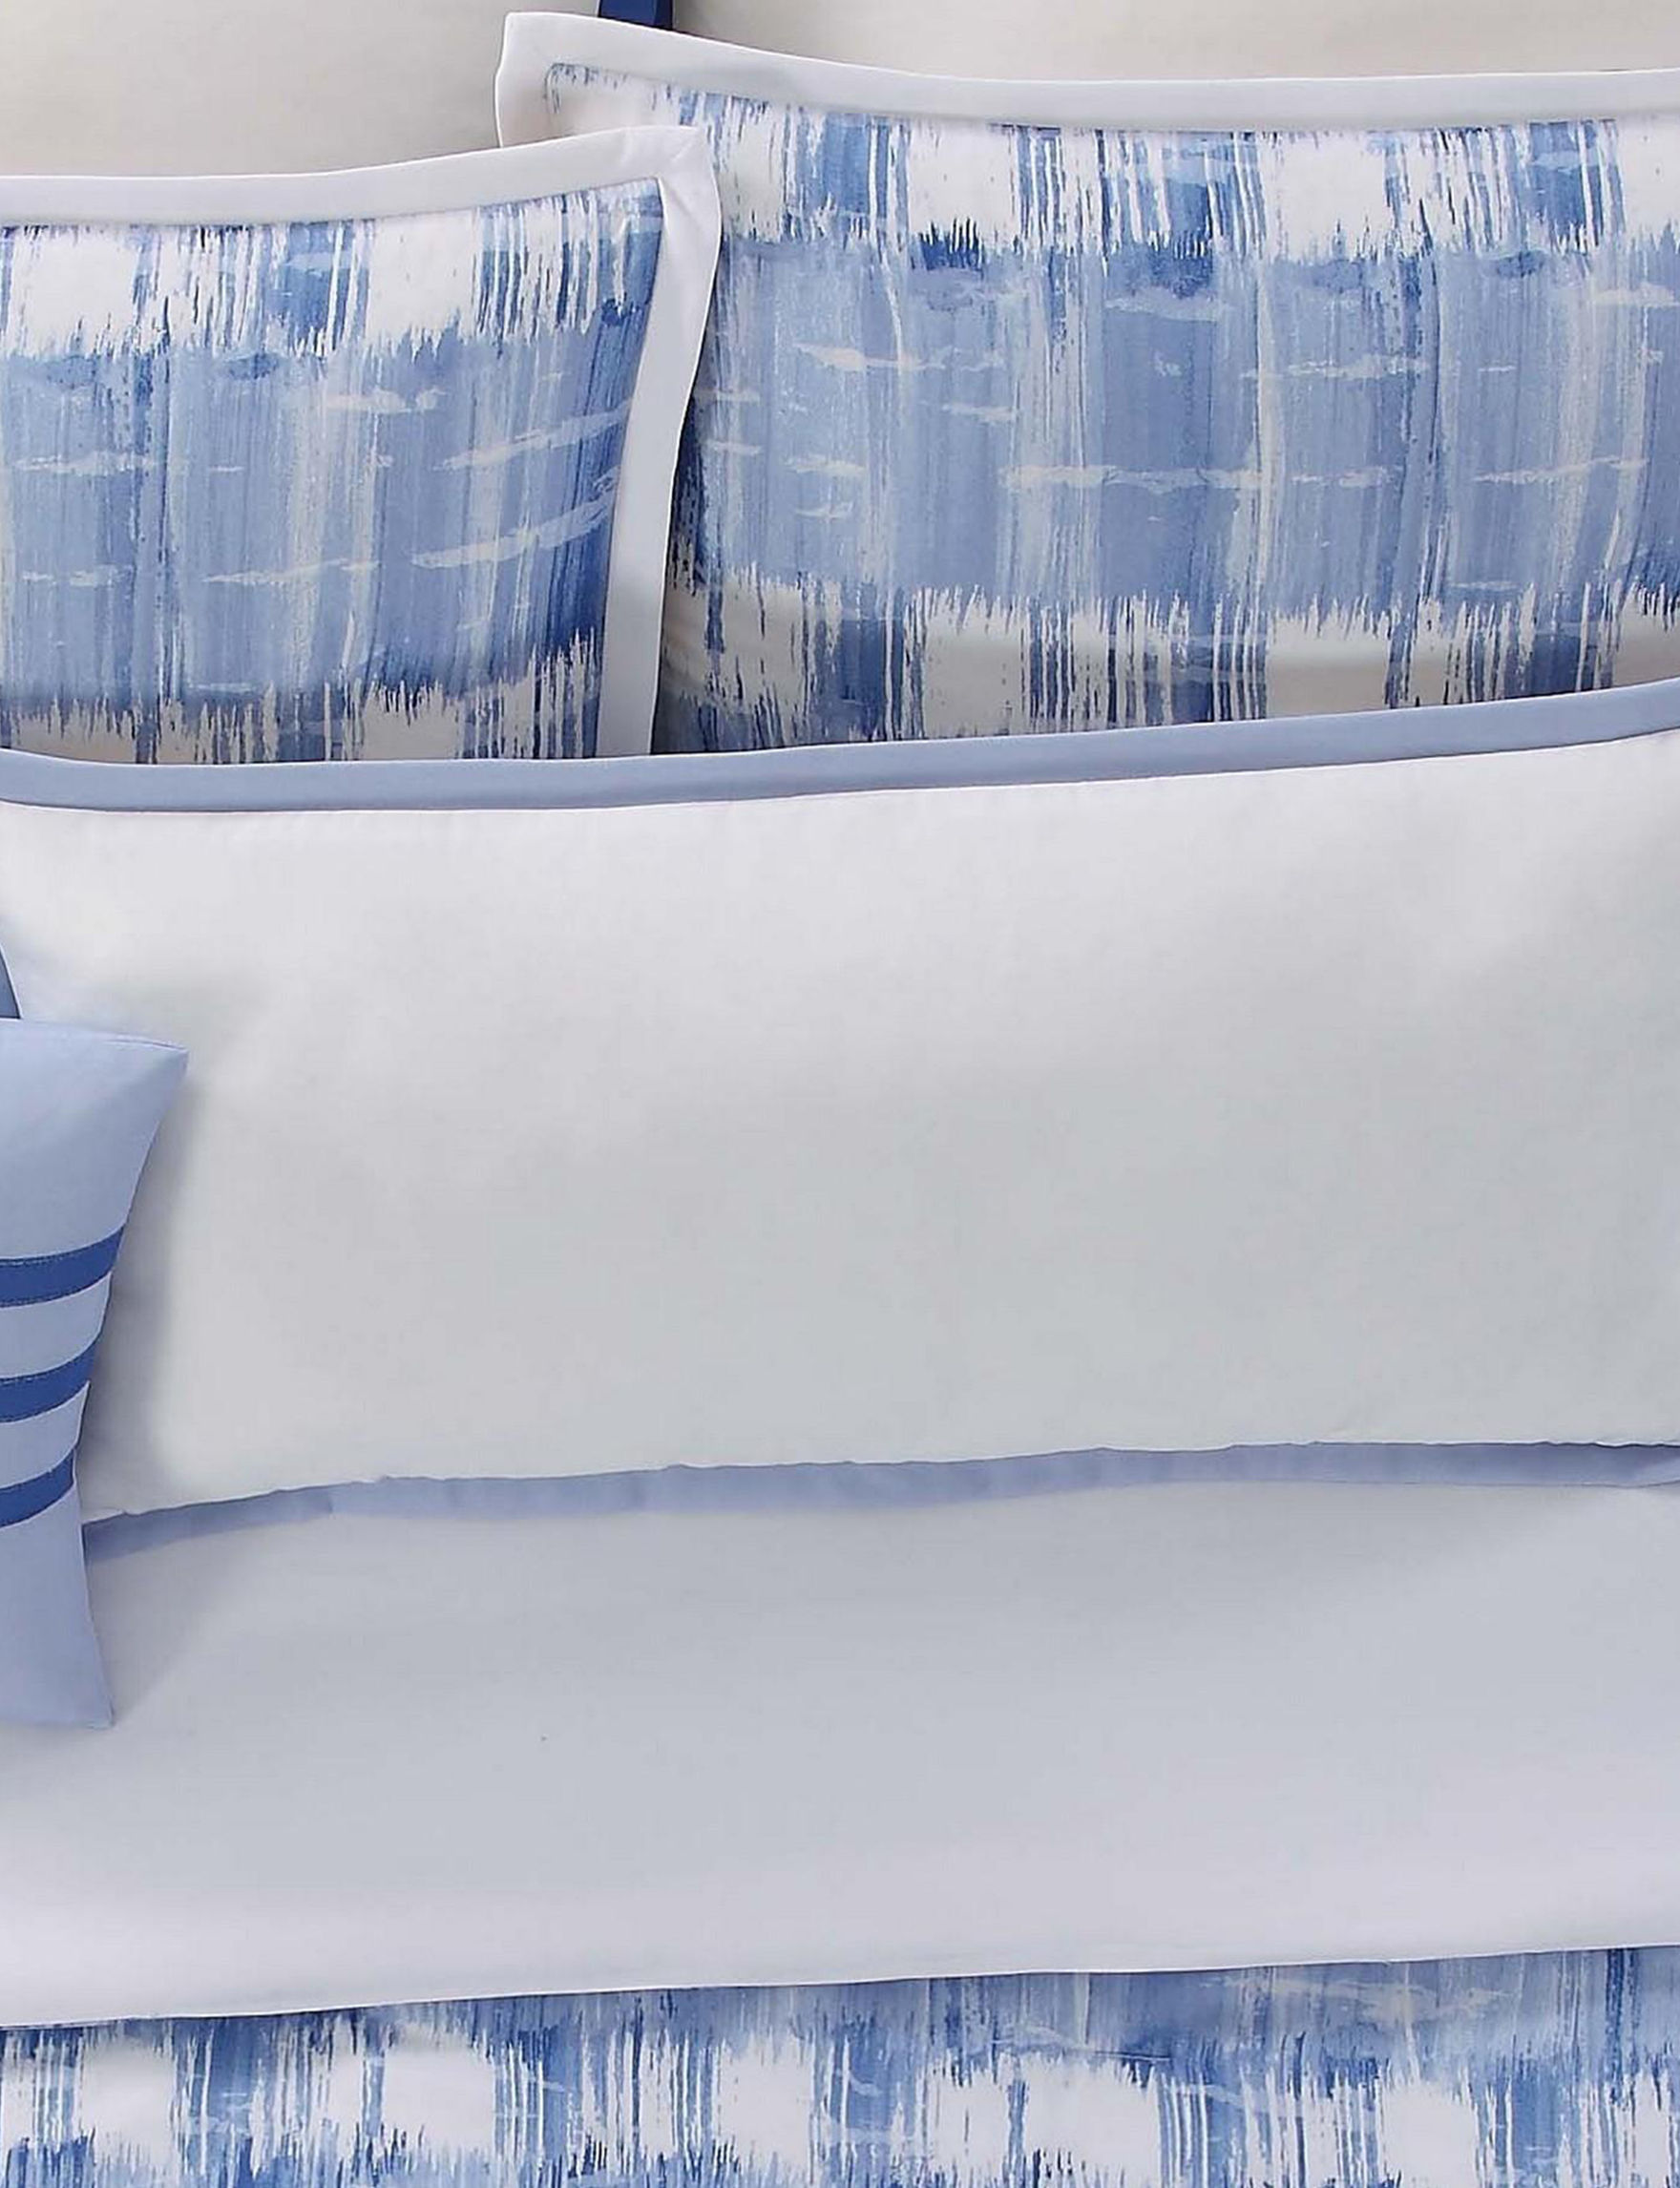 Vince Camuto Blue / White Decorative Pillows